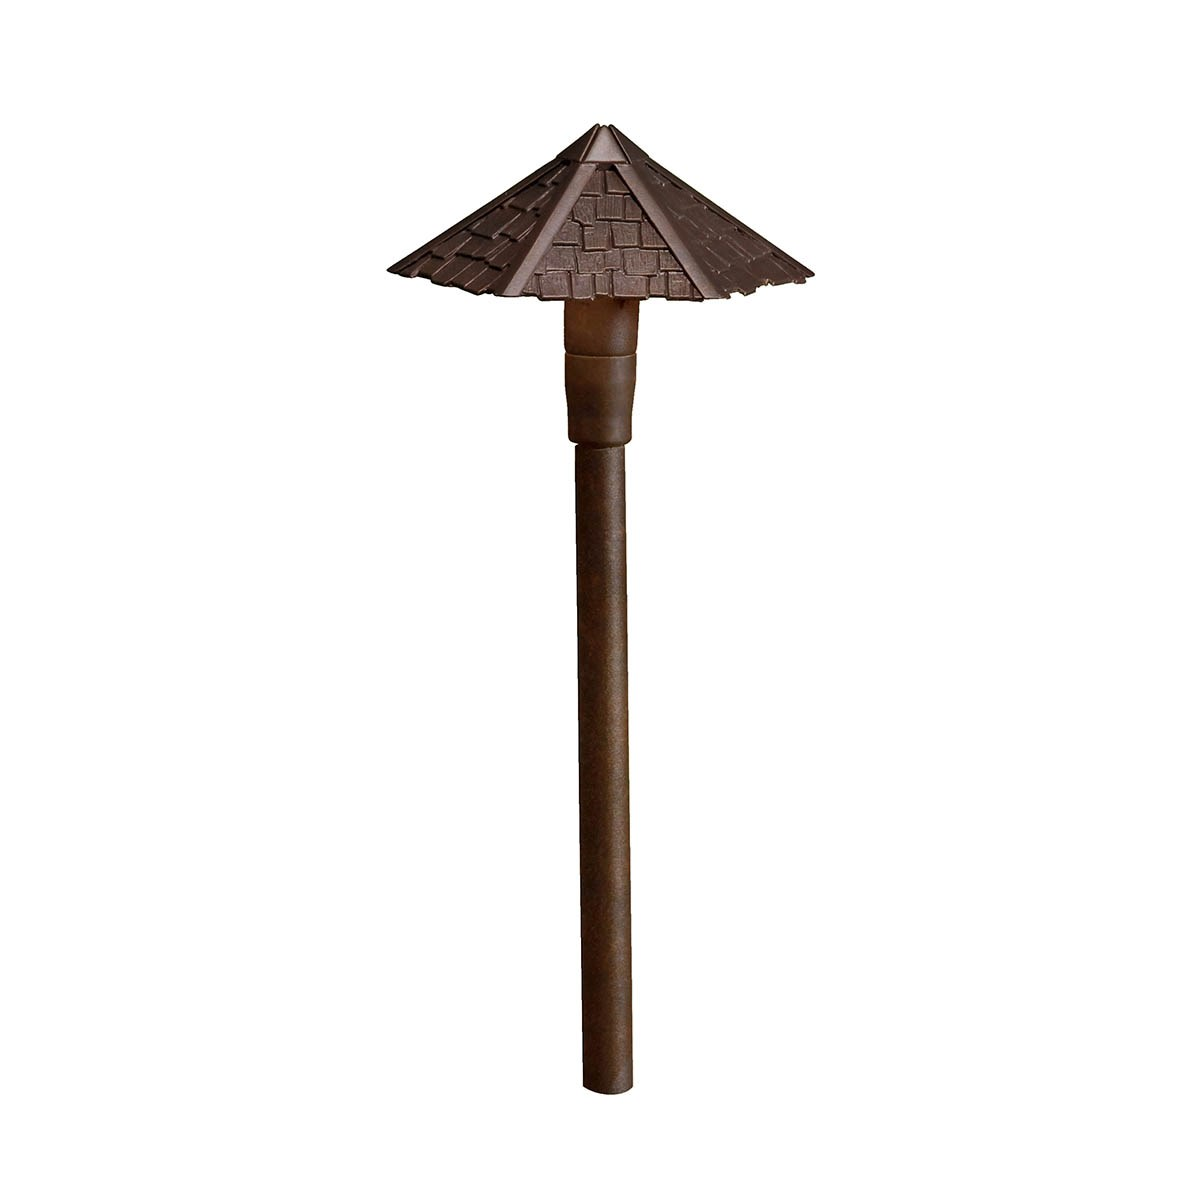 12V Thatched Roof Path Light Textured Architectural Bronze